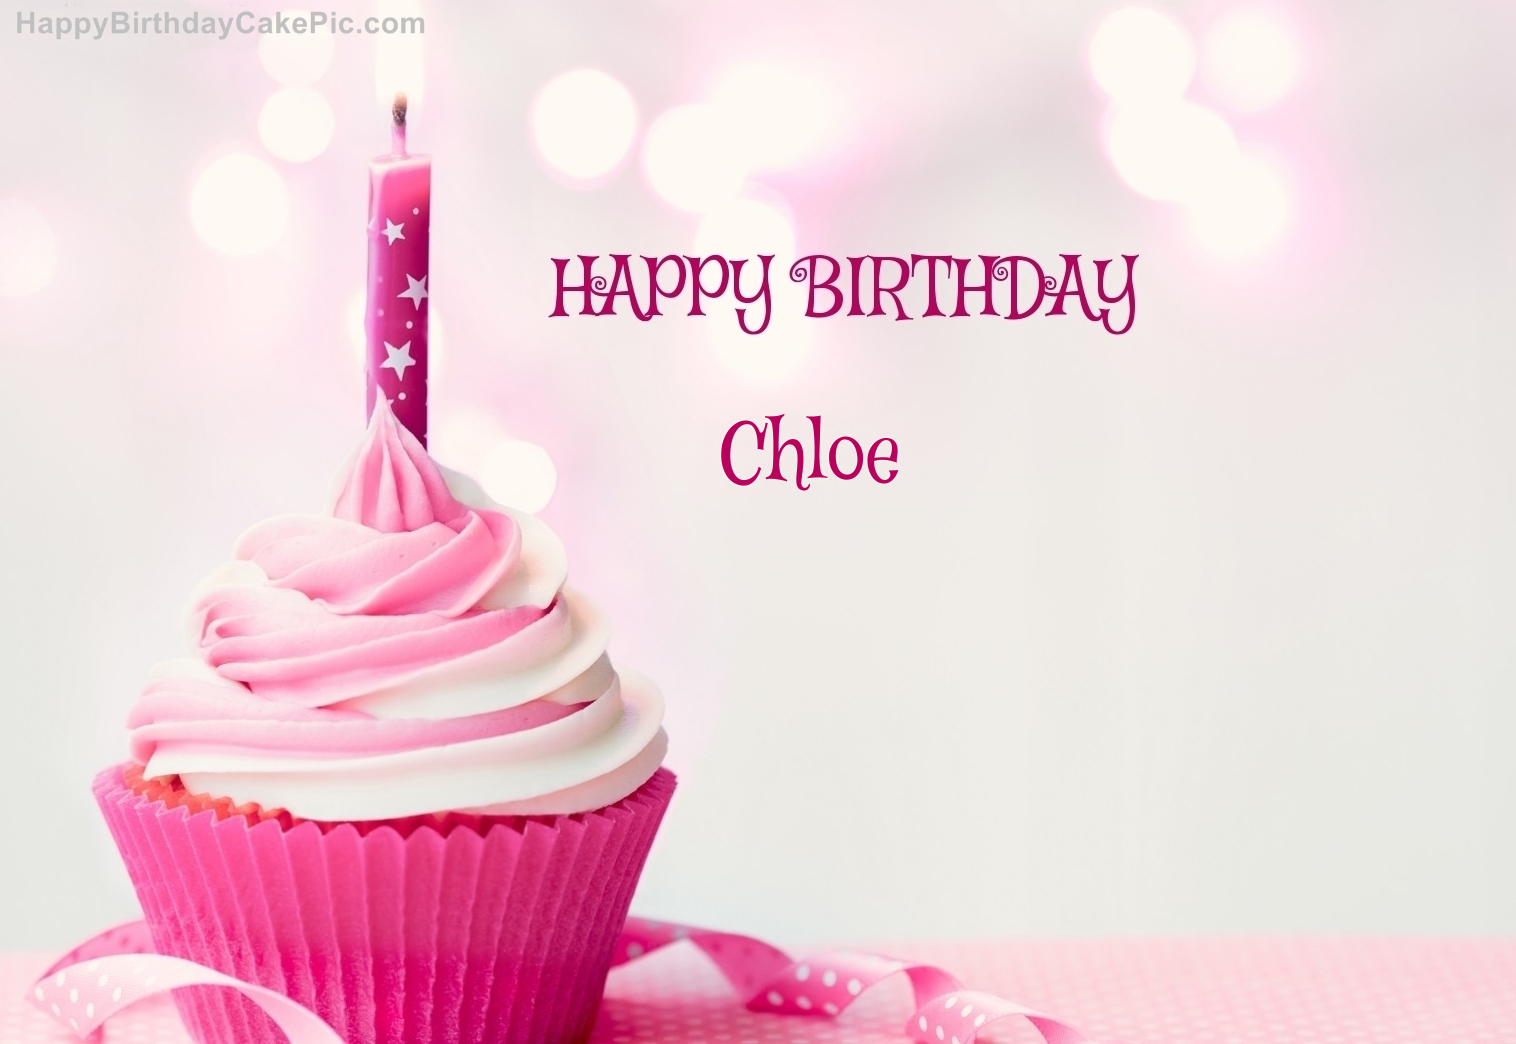 Happy Birthday Cupcake Candle Pink Cake For Chloe